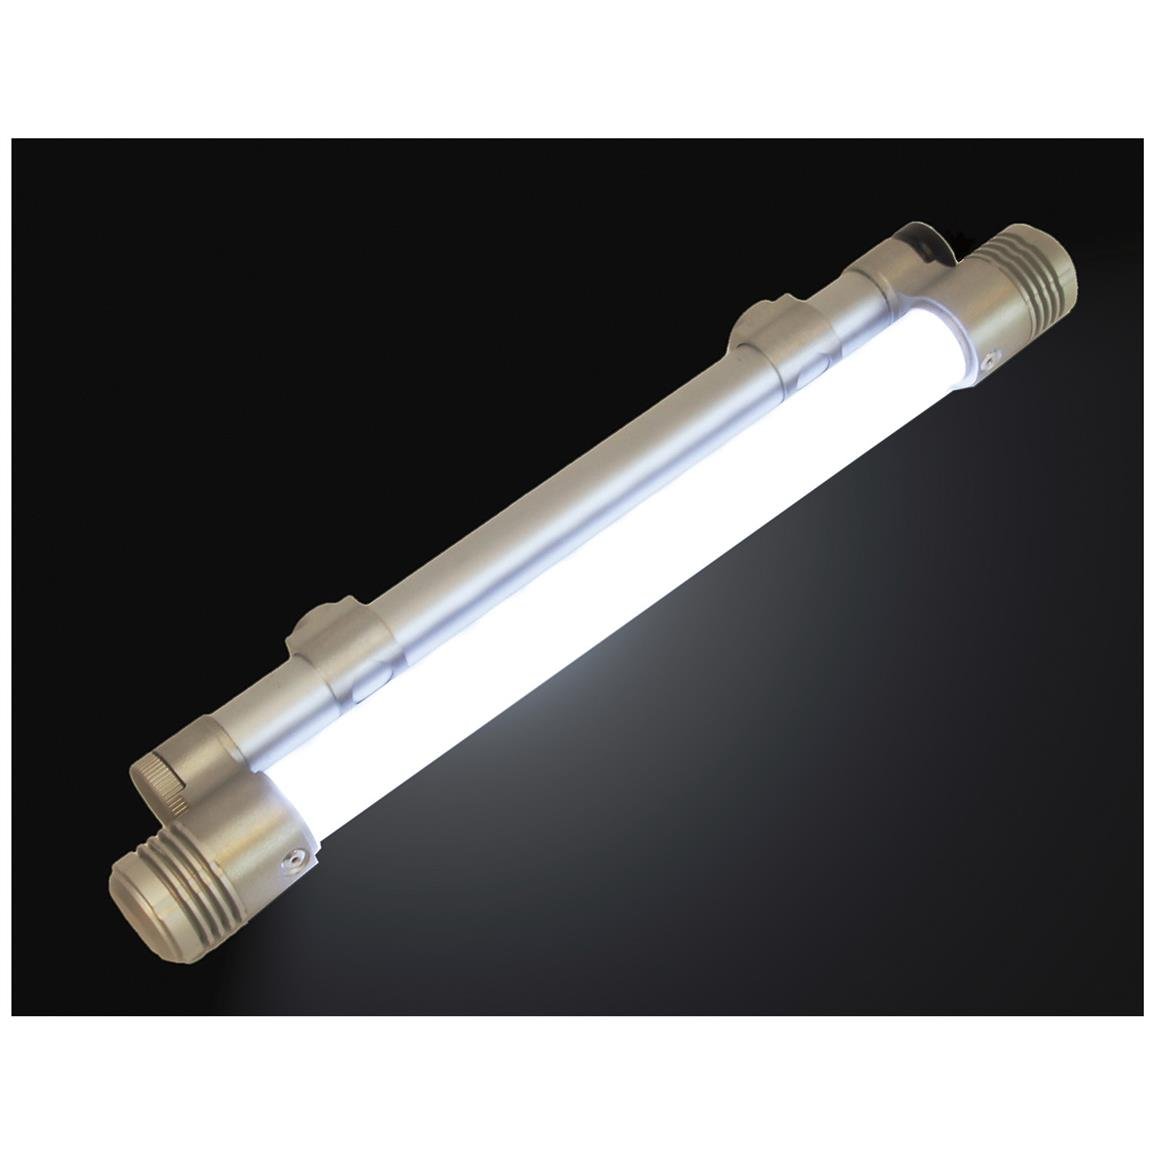 Unique polycarbonate tube light diffuser